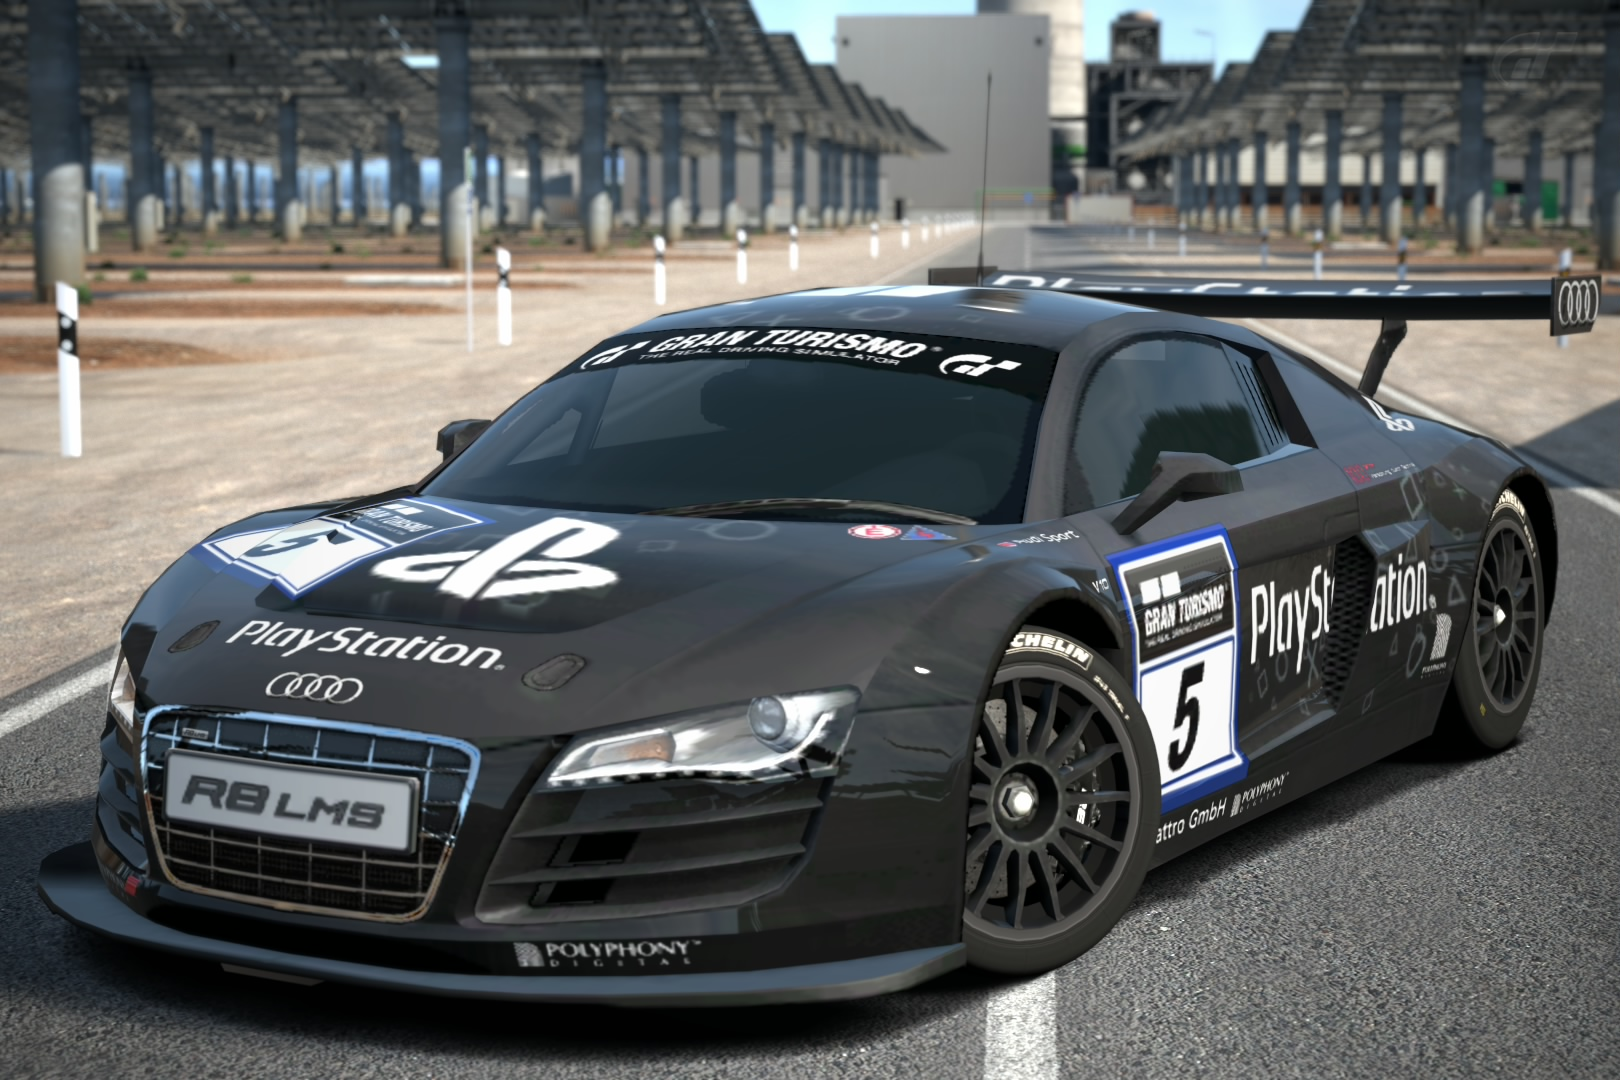 Audi R8 Lms Race Car Team Playstation 09 Gran Turismo Wiki